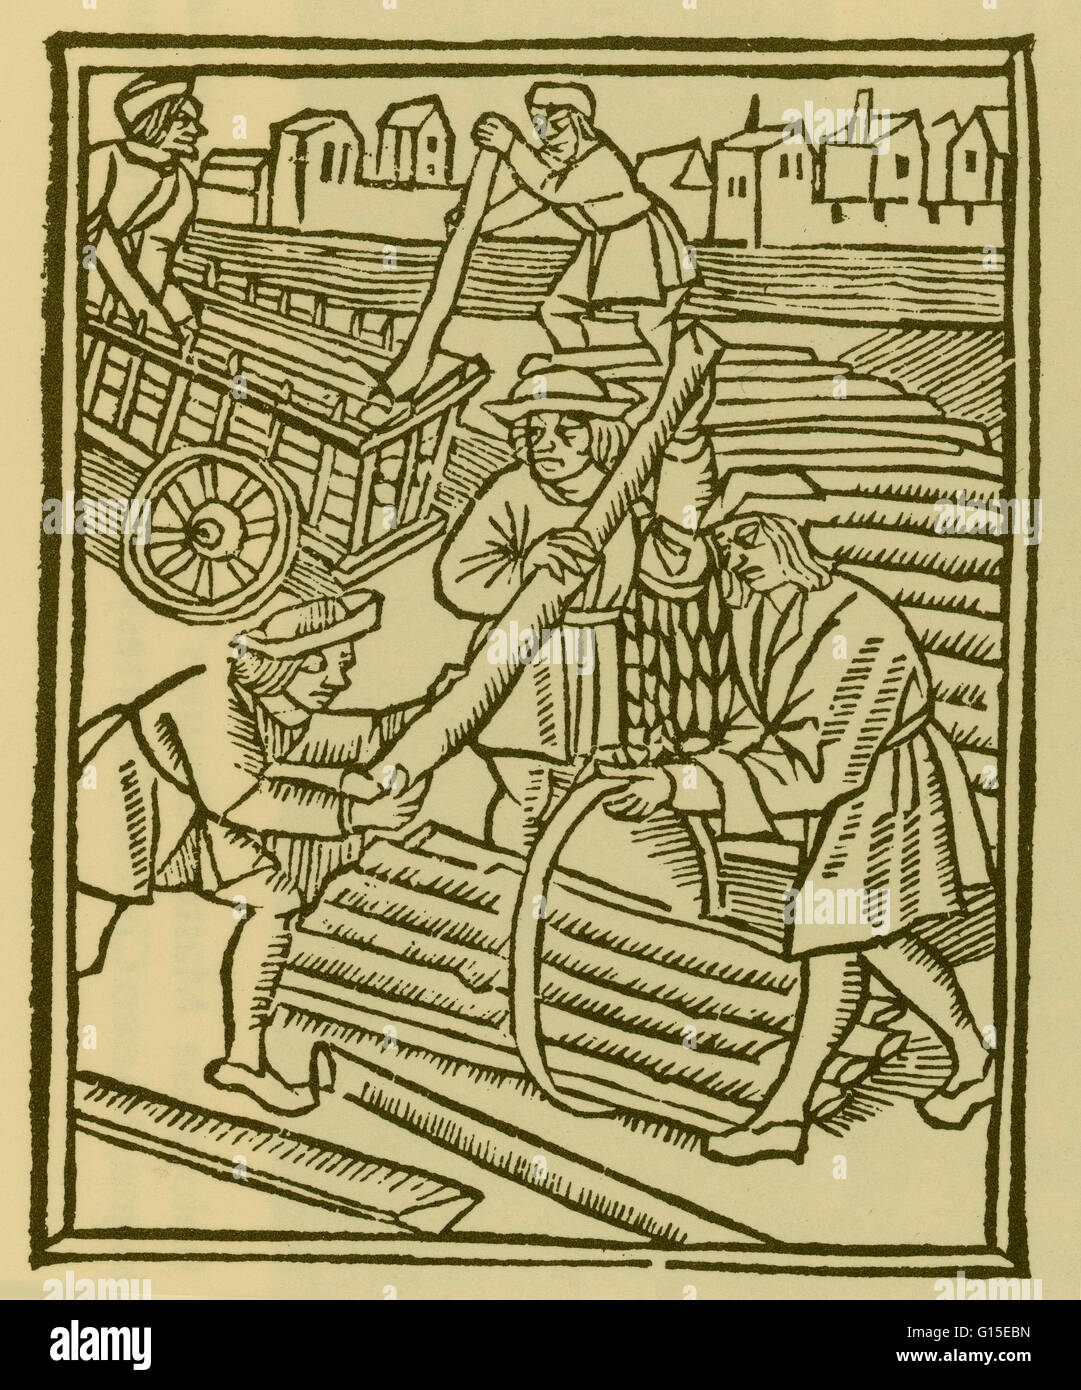 Scenes from a trade: timber haulers. Woodcuts, 1500/01, from Les Ordonnances de paris. - Stock Image